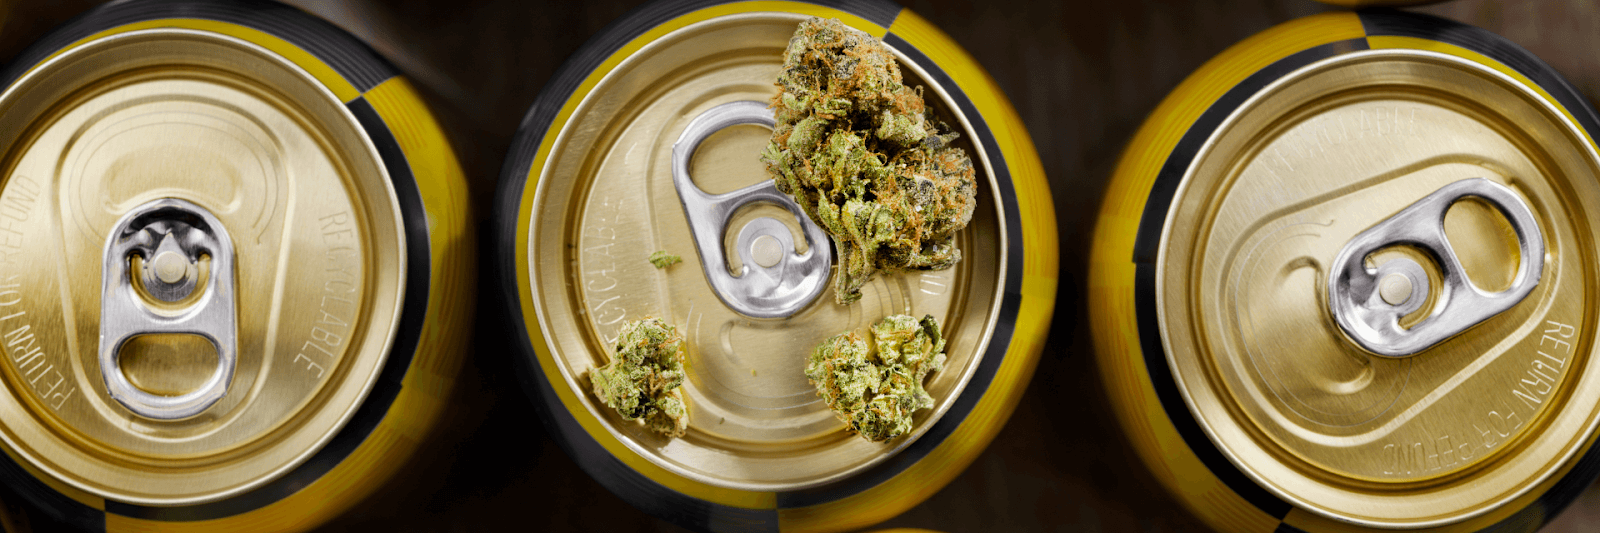 Three cans, the center with marijuana leaves on it